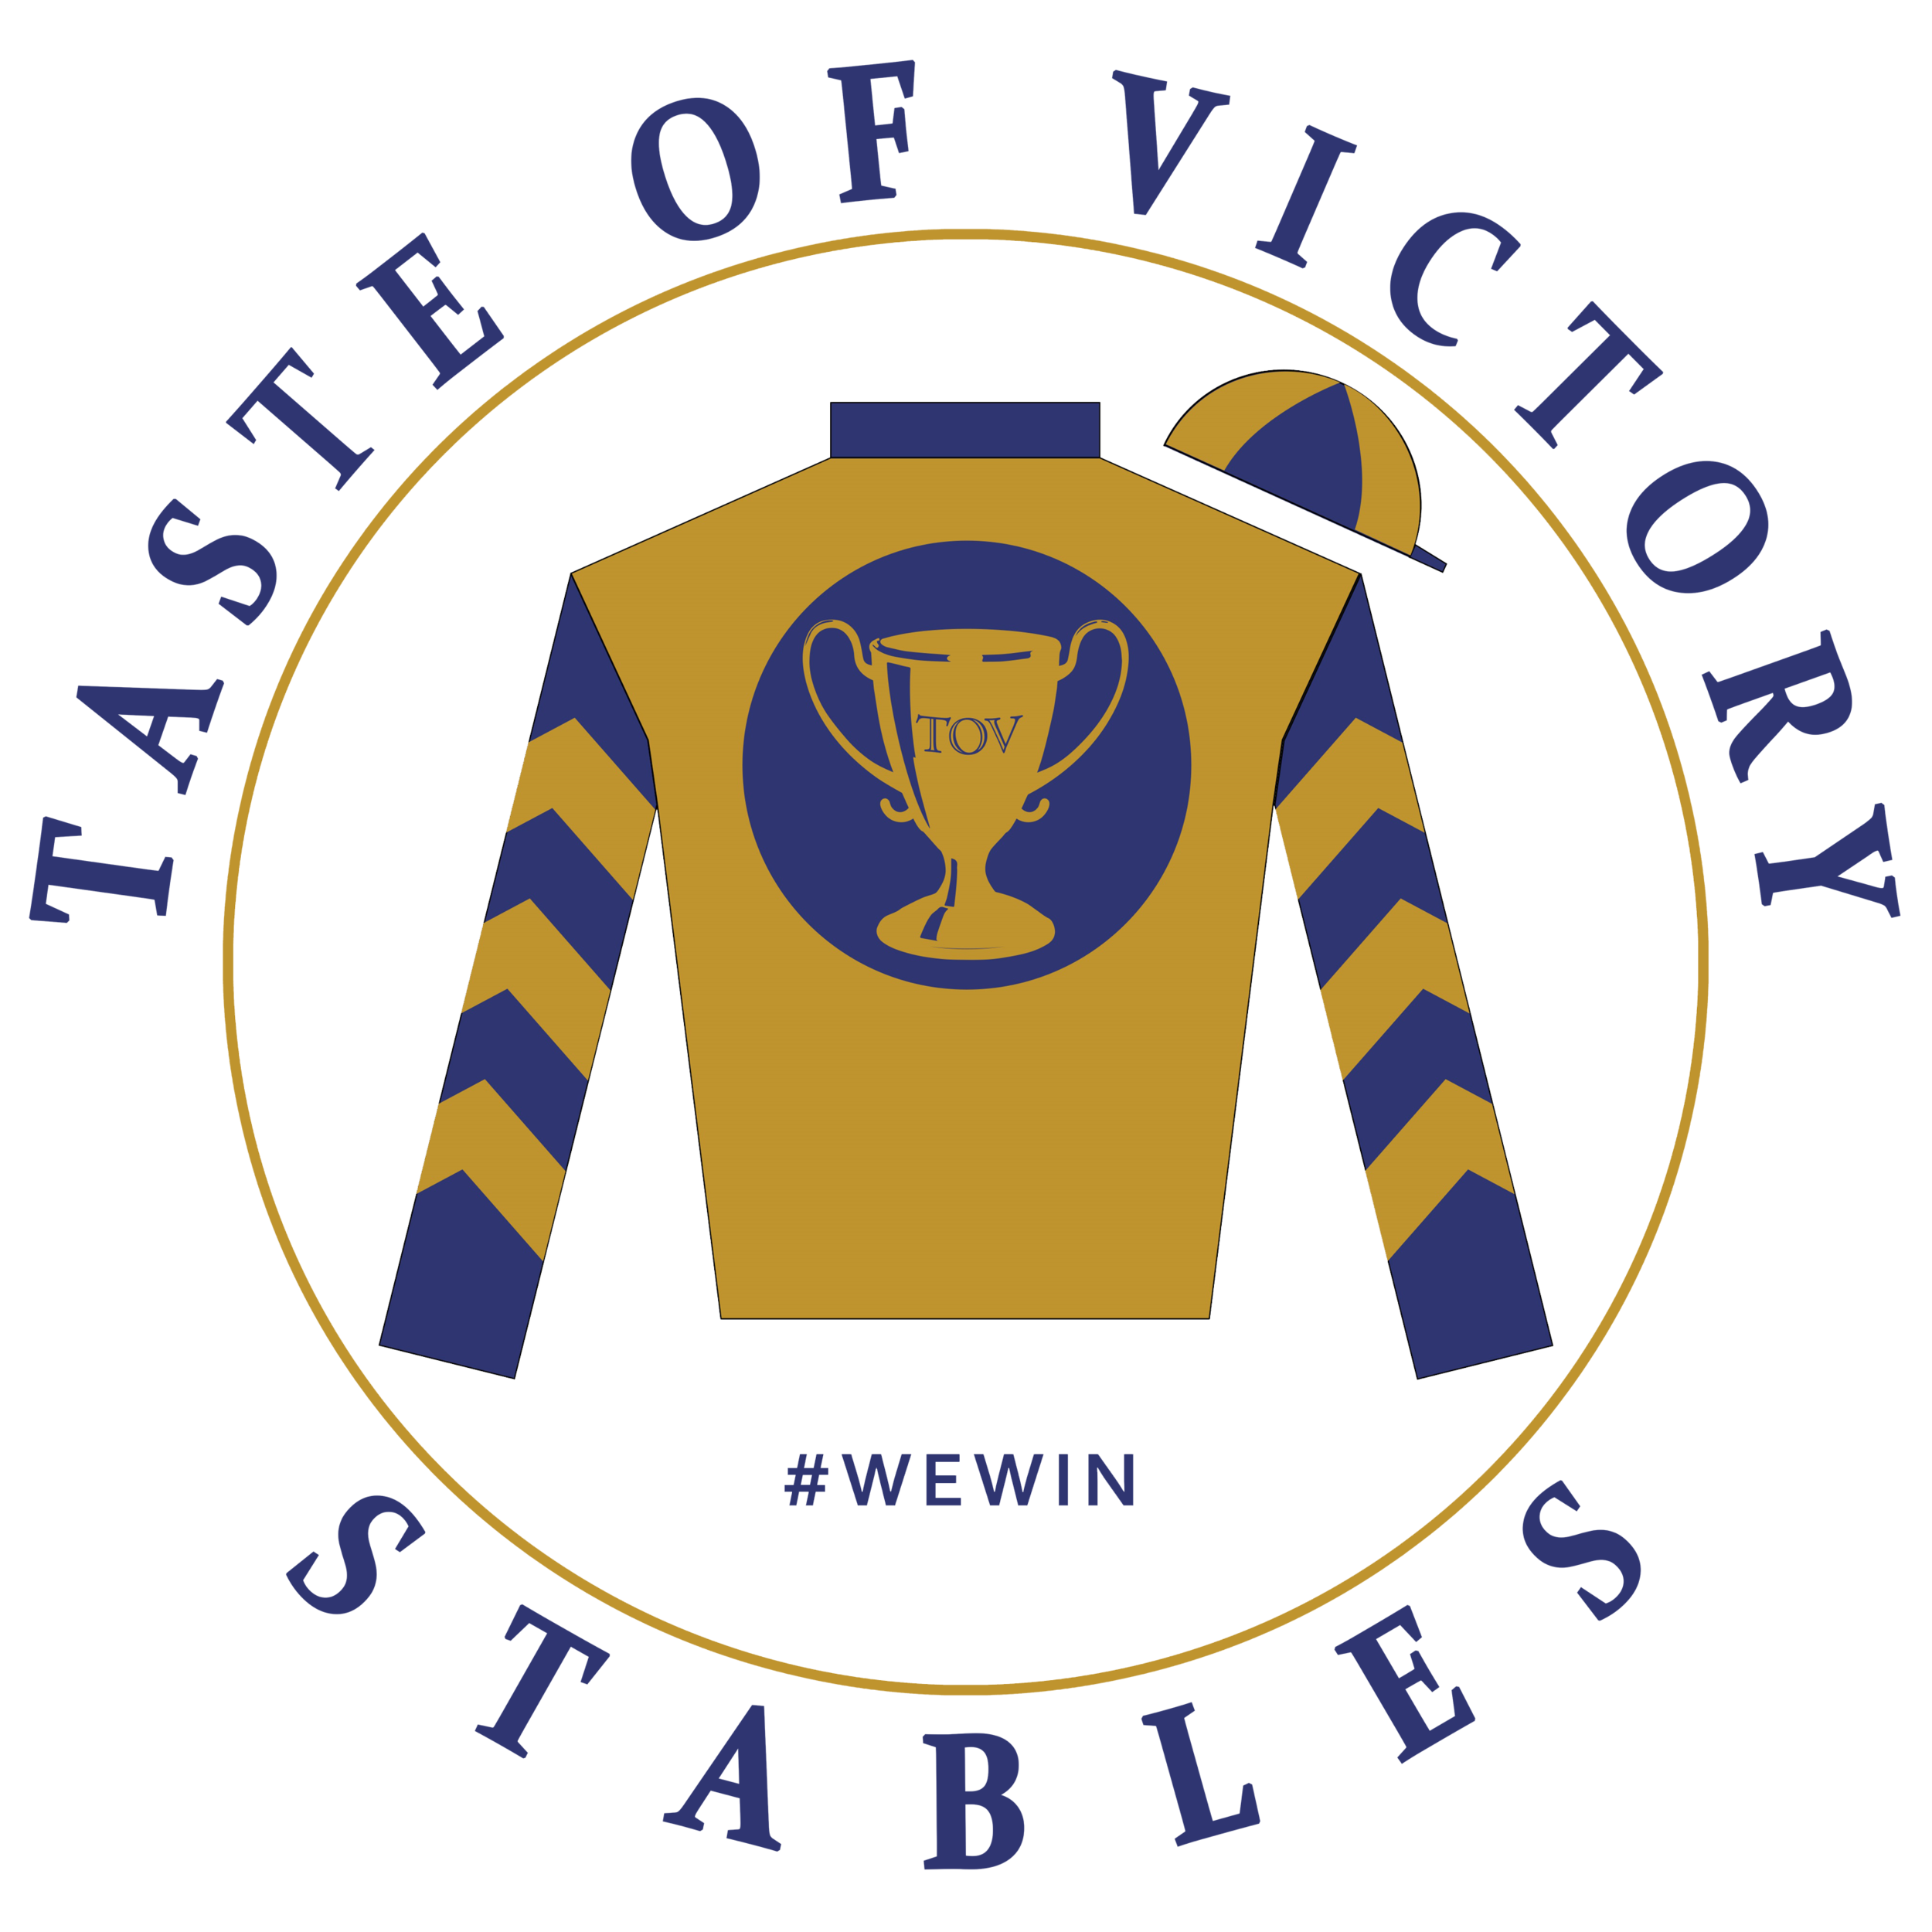 About - Find out about our organization,mission, our methods, and the results of Taste of Victory Stables